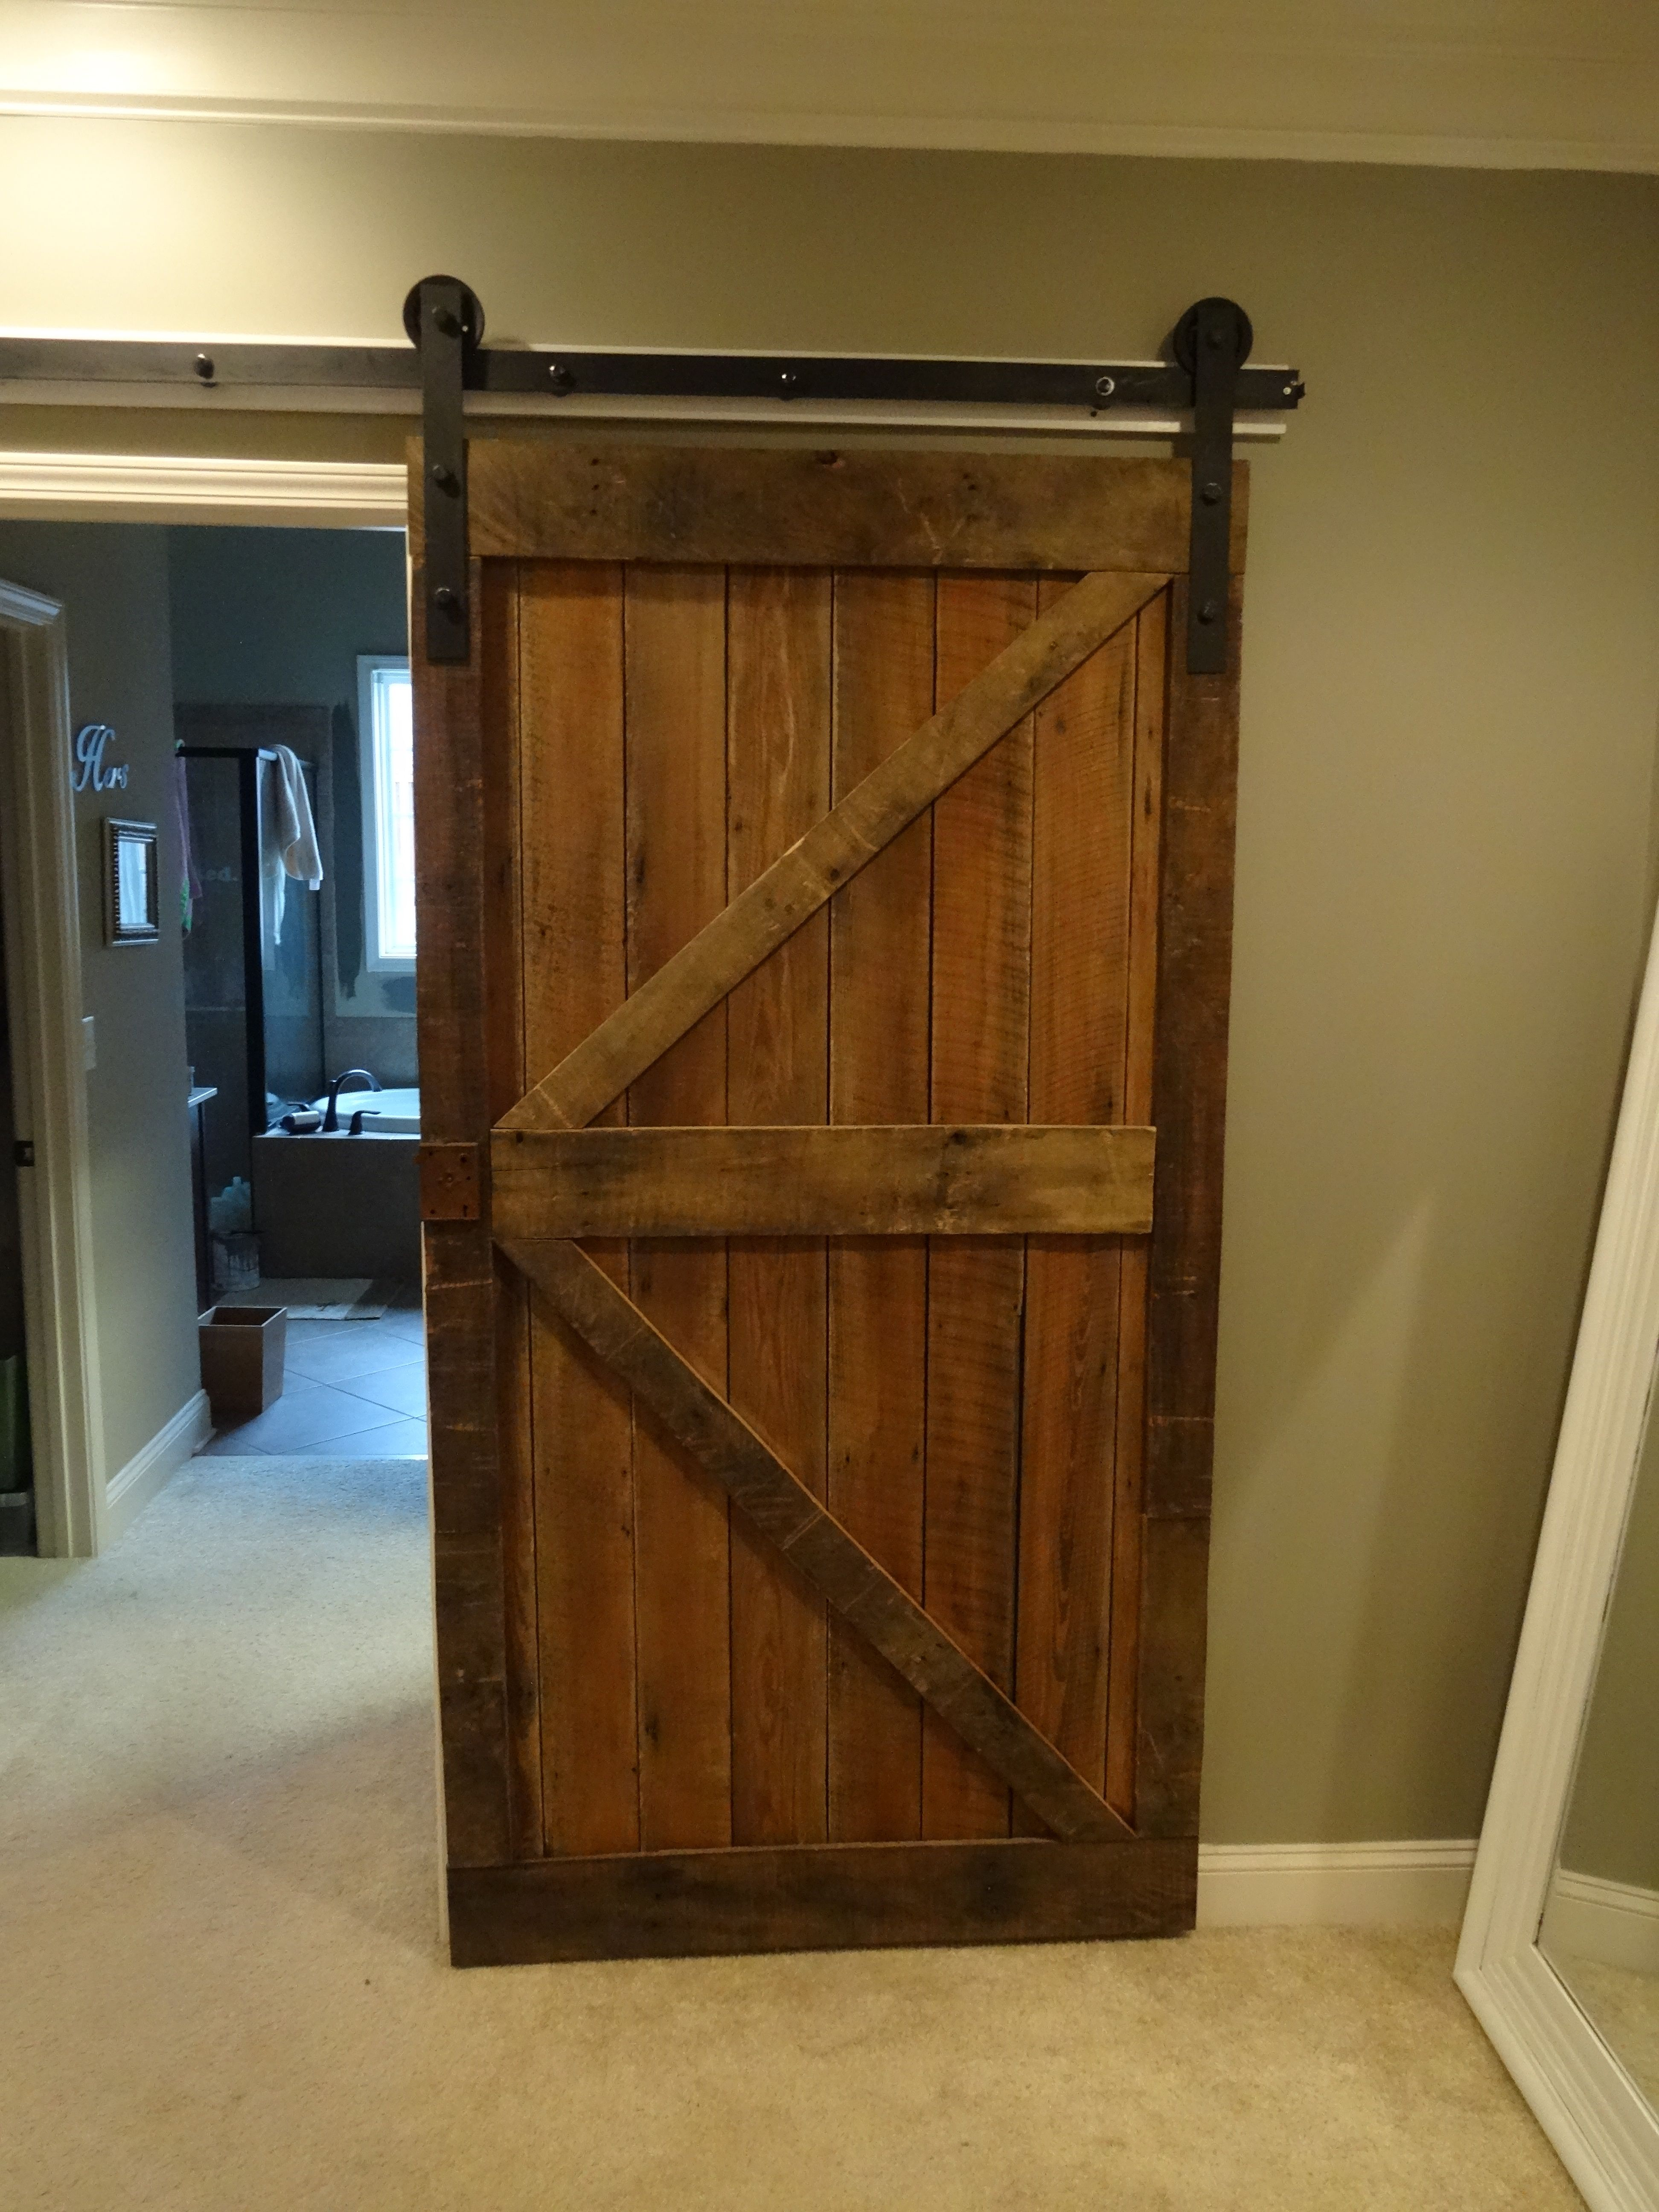 Fascinating barn wood sliding single rustic doors for for Barn door design ideas